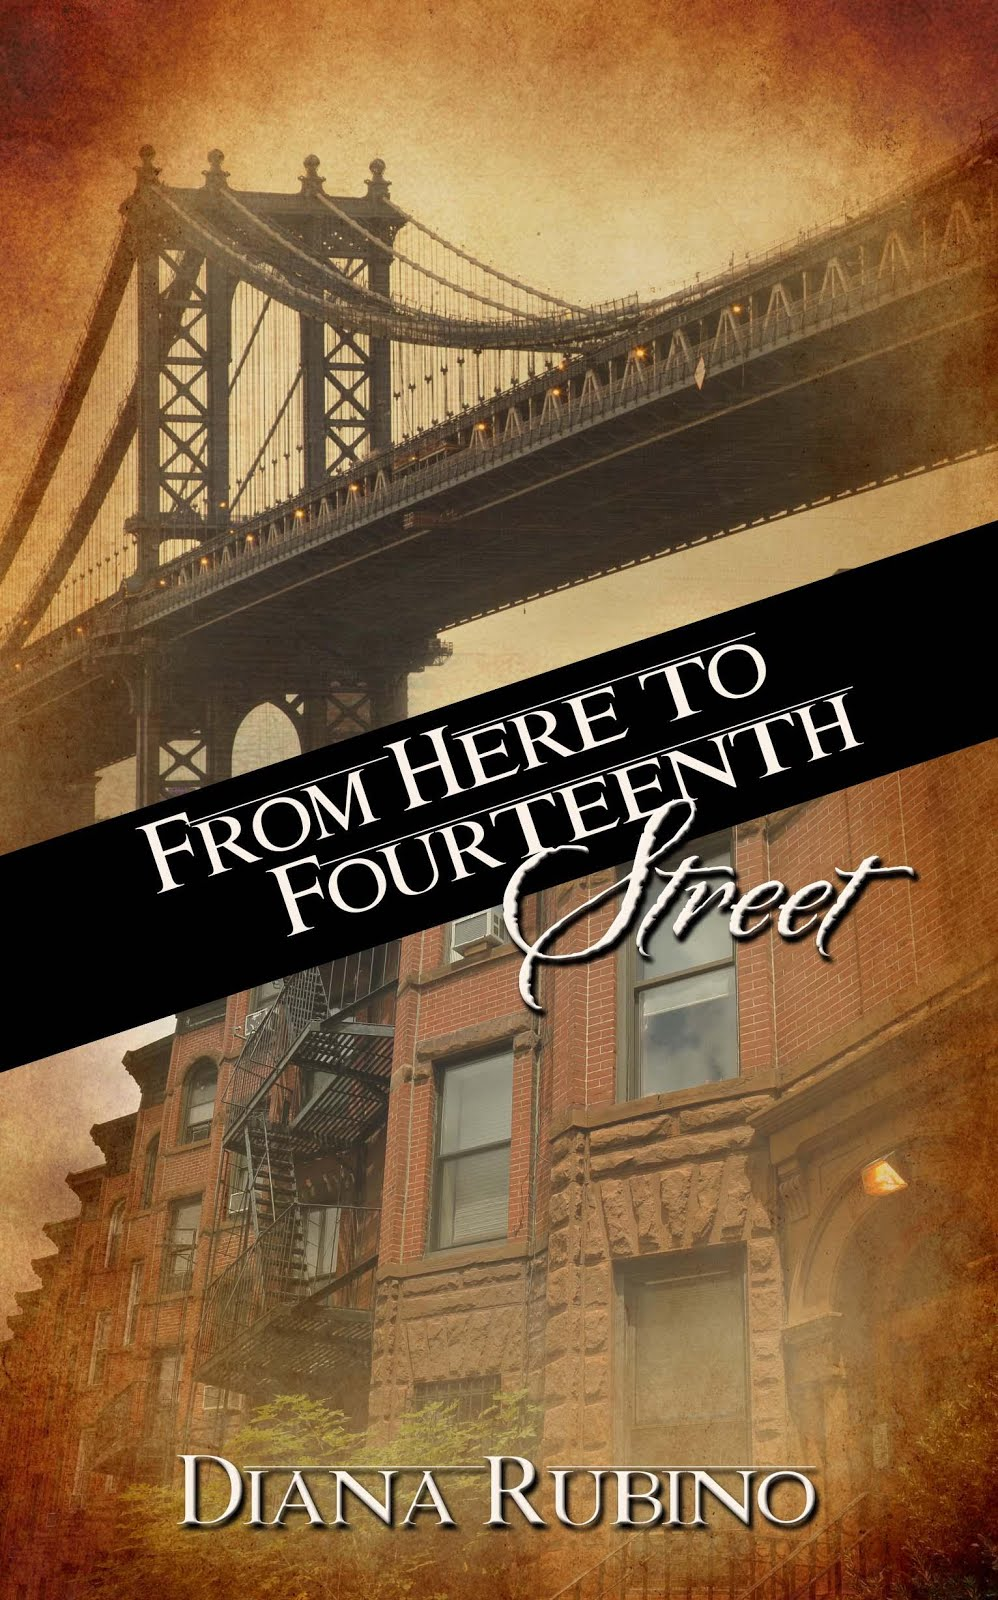 FROM HERE TO FOURTEENTH STREET--Book One of the New York Saga